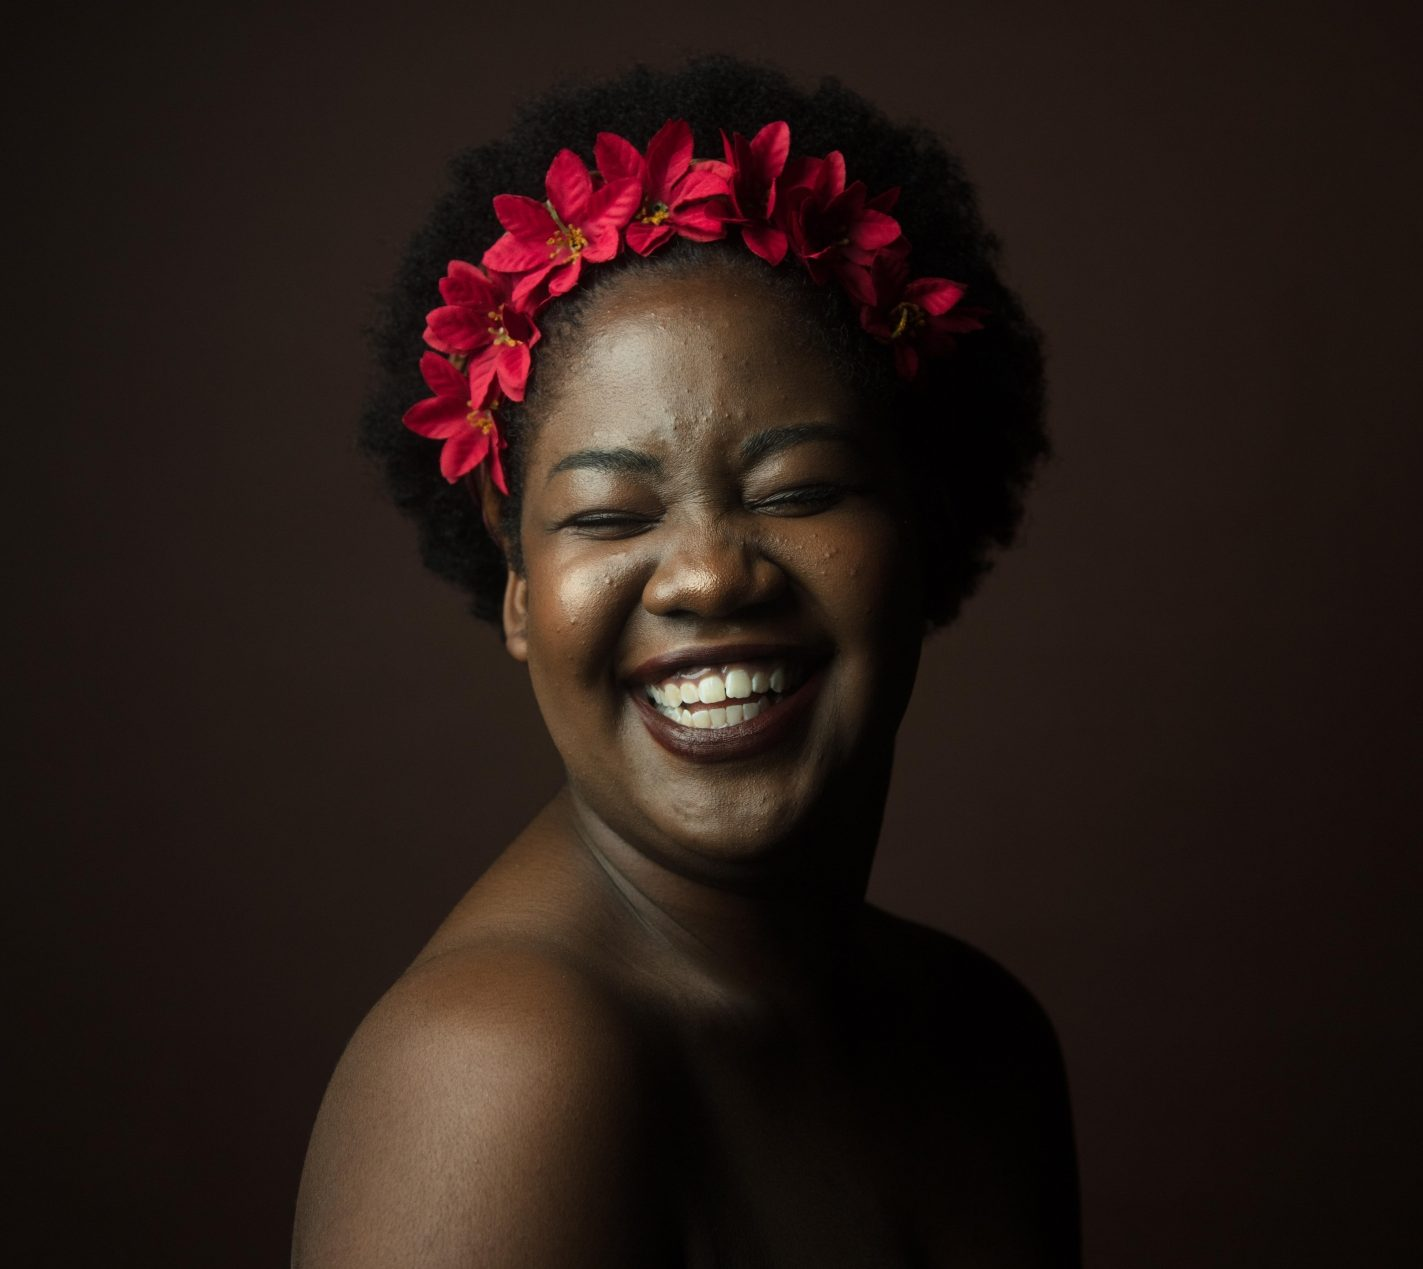 woman with red flowers in hair laughing close up period panties